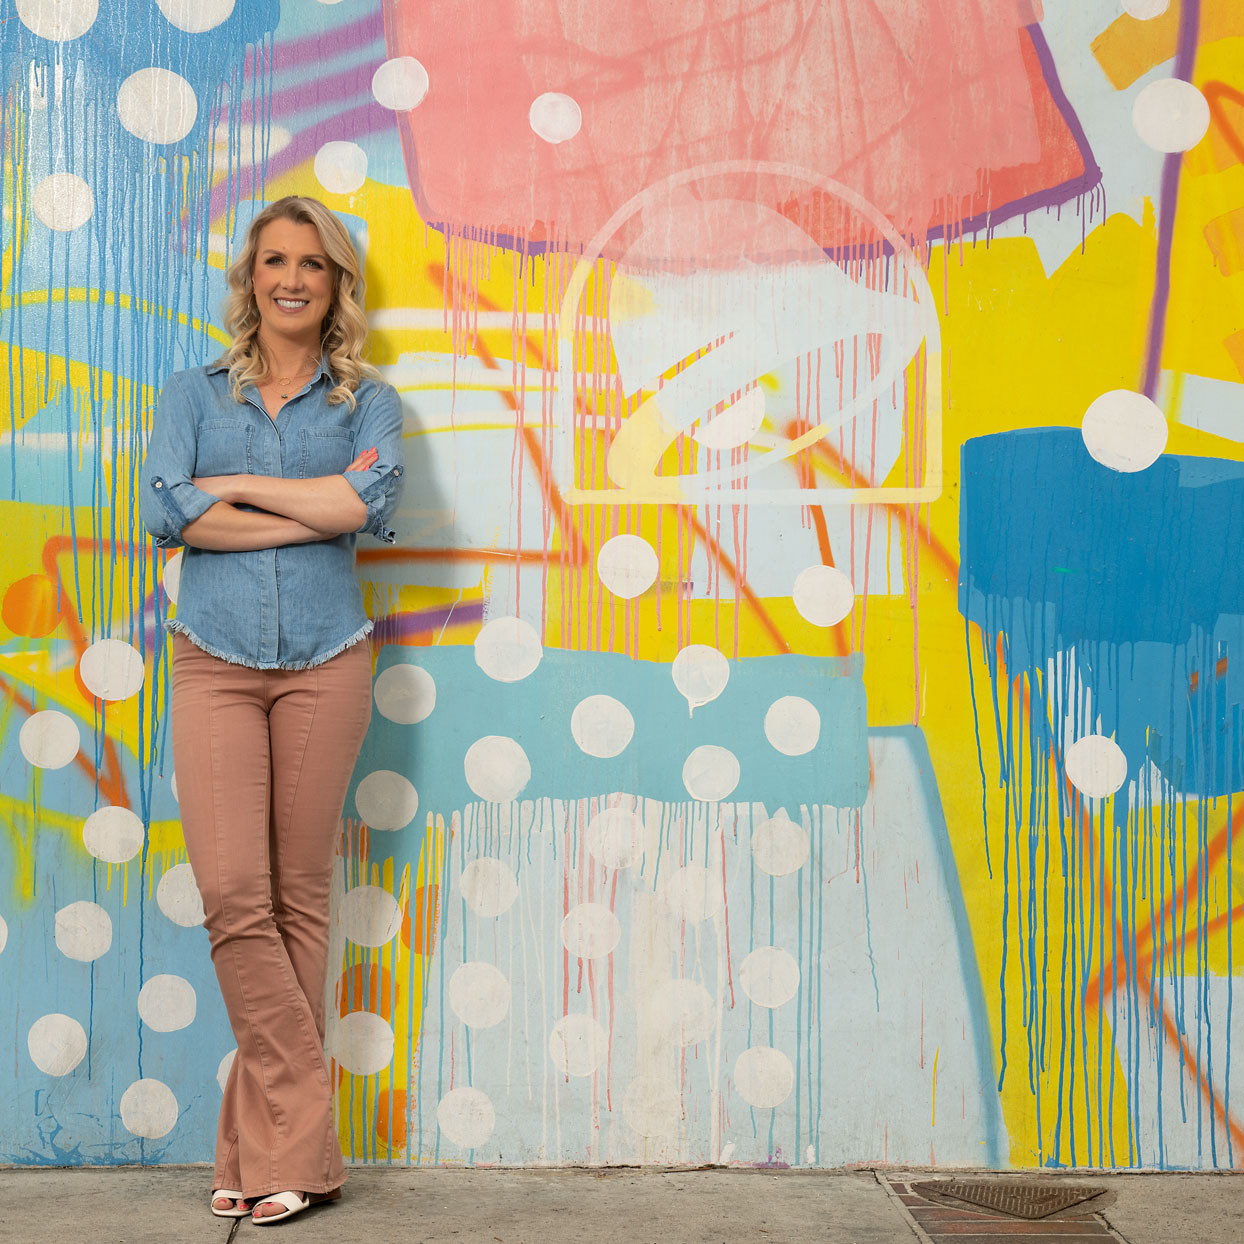 woman infront of colorful wall